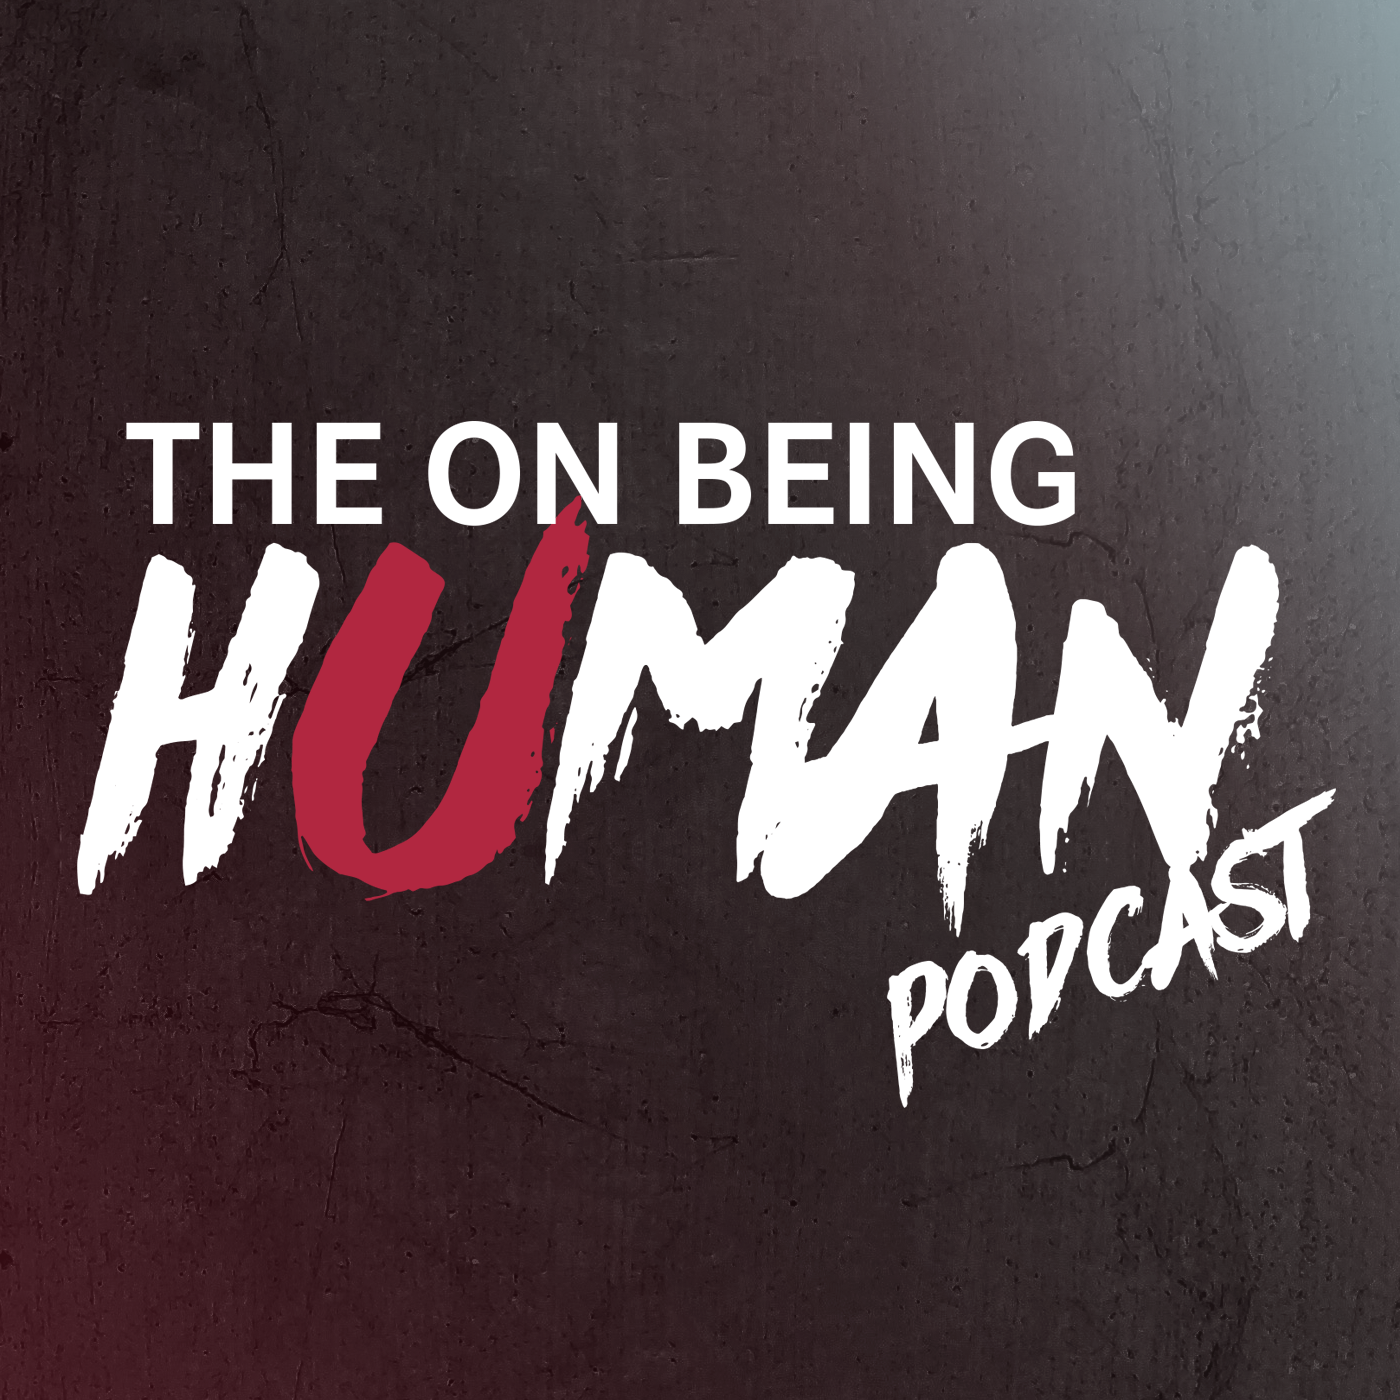 The On Being Human Podcast Podcast - Listen, Reviews, Charts